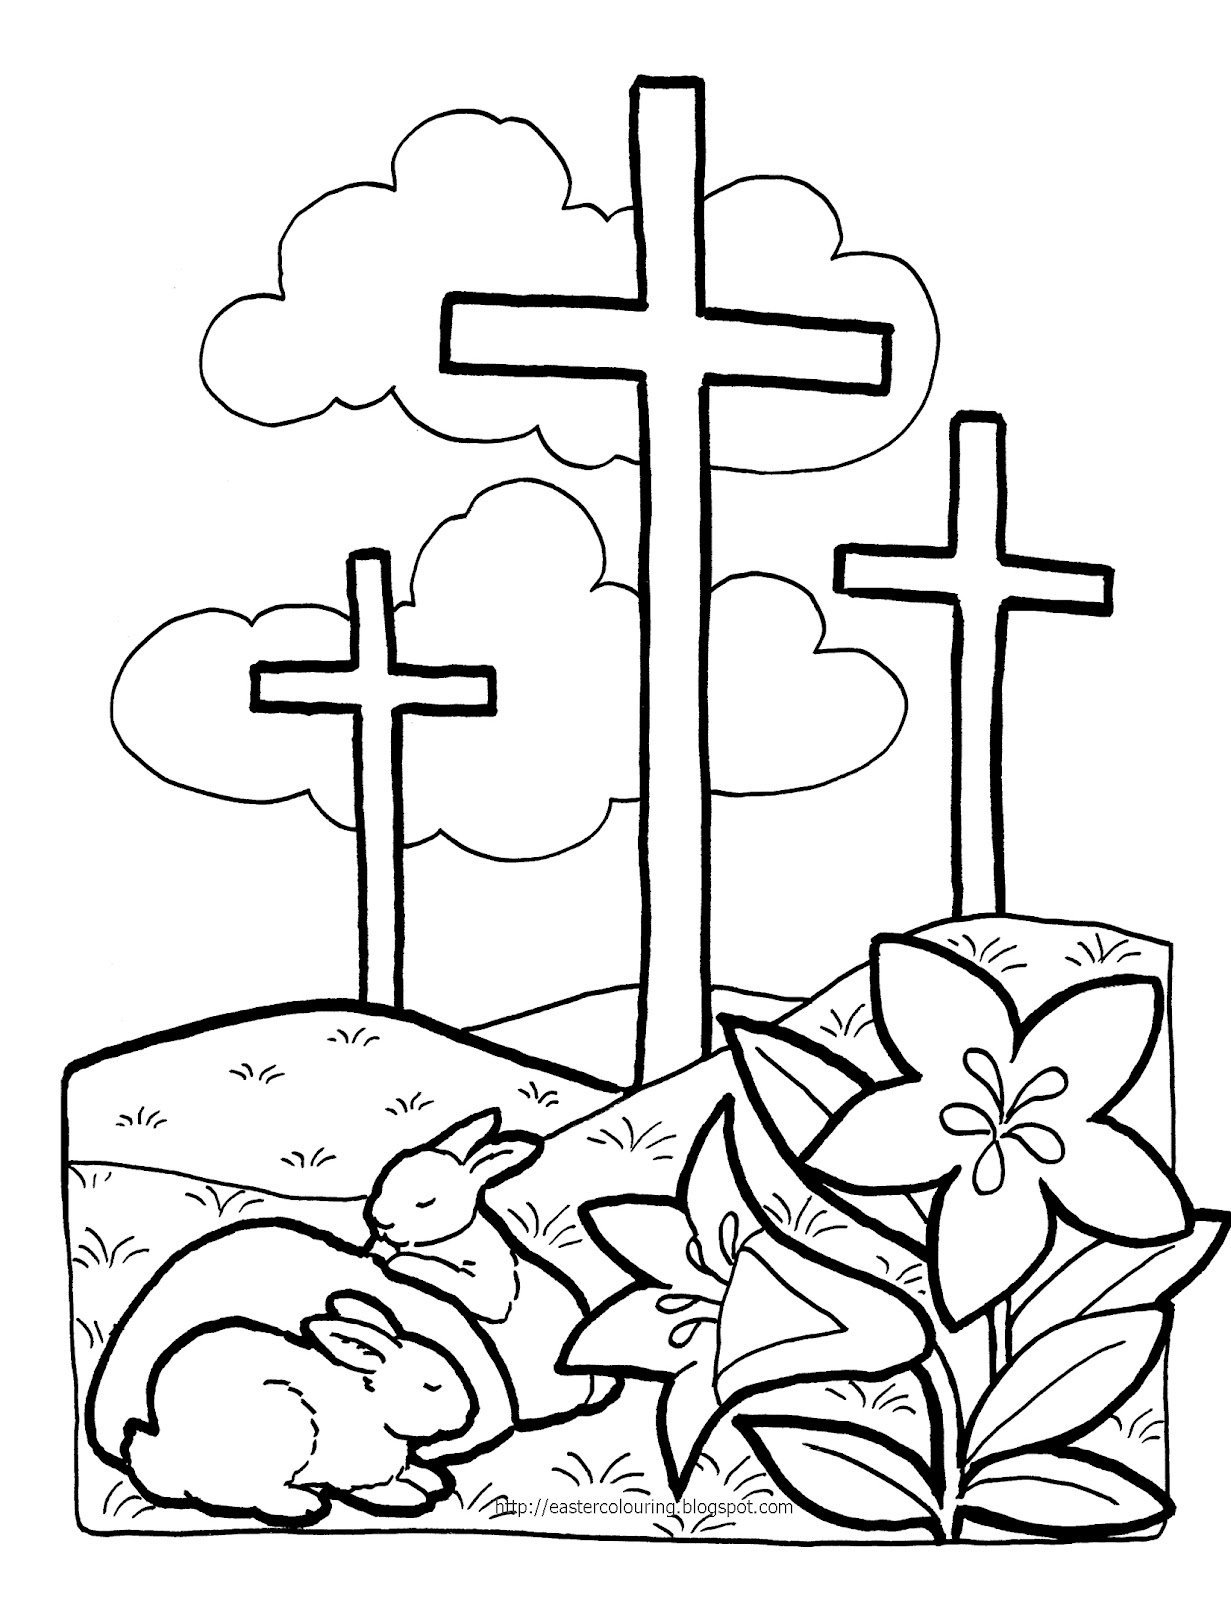 Religious Coloring Pages For Kids Free Printable Christian Coloring Pages For Kids Best Coloring